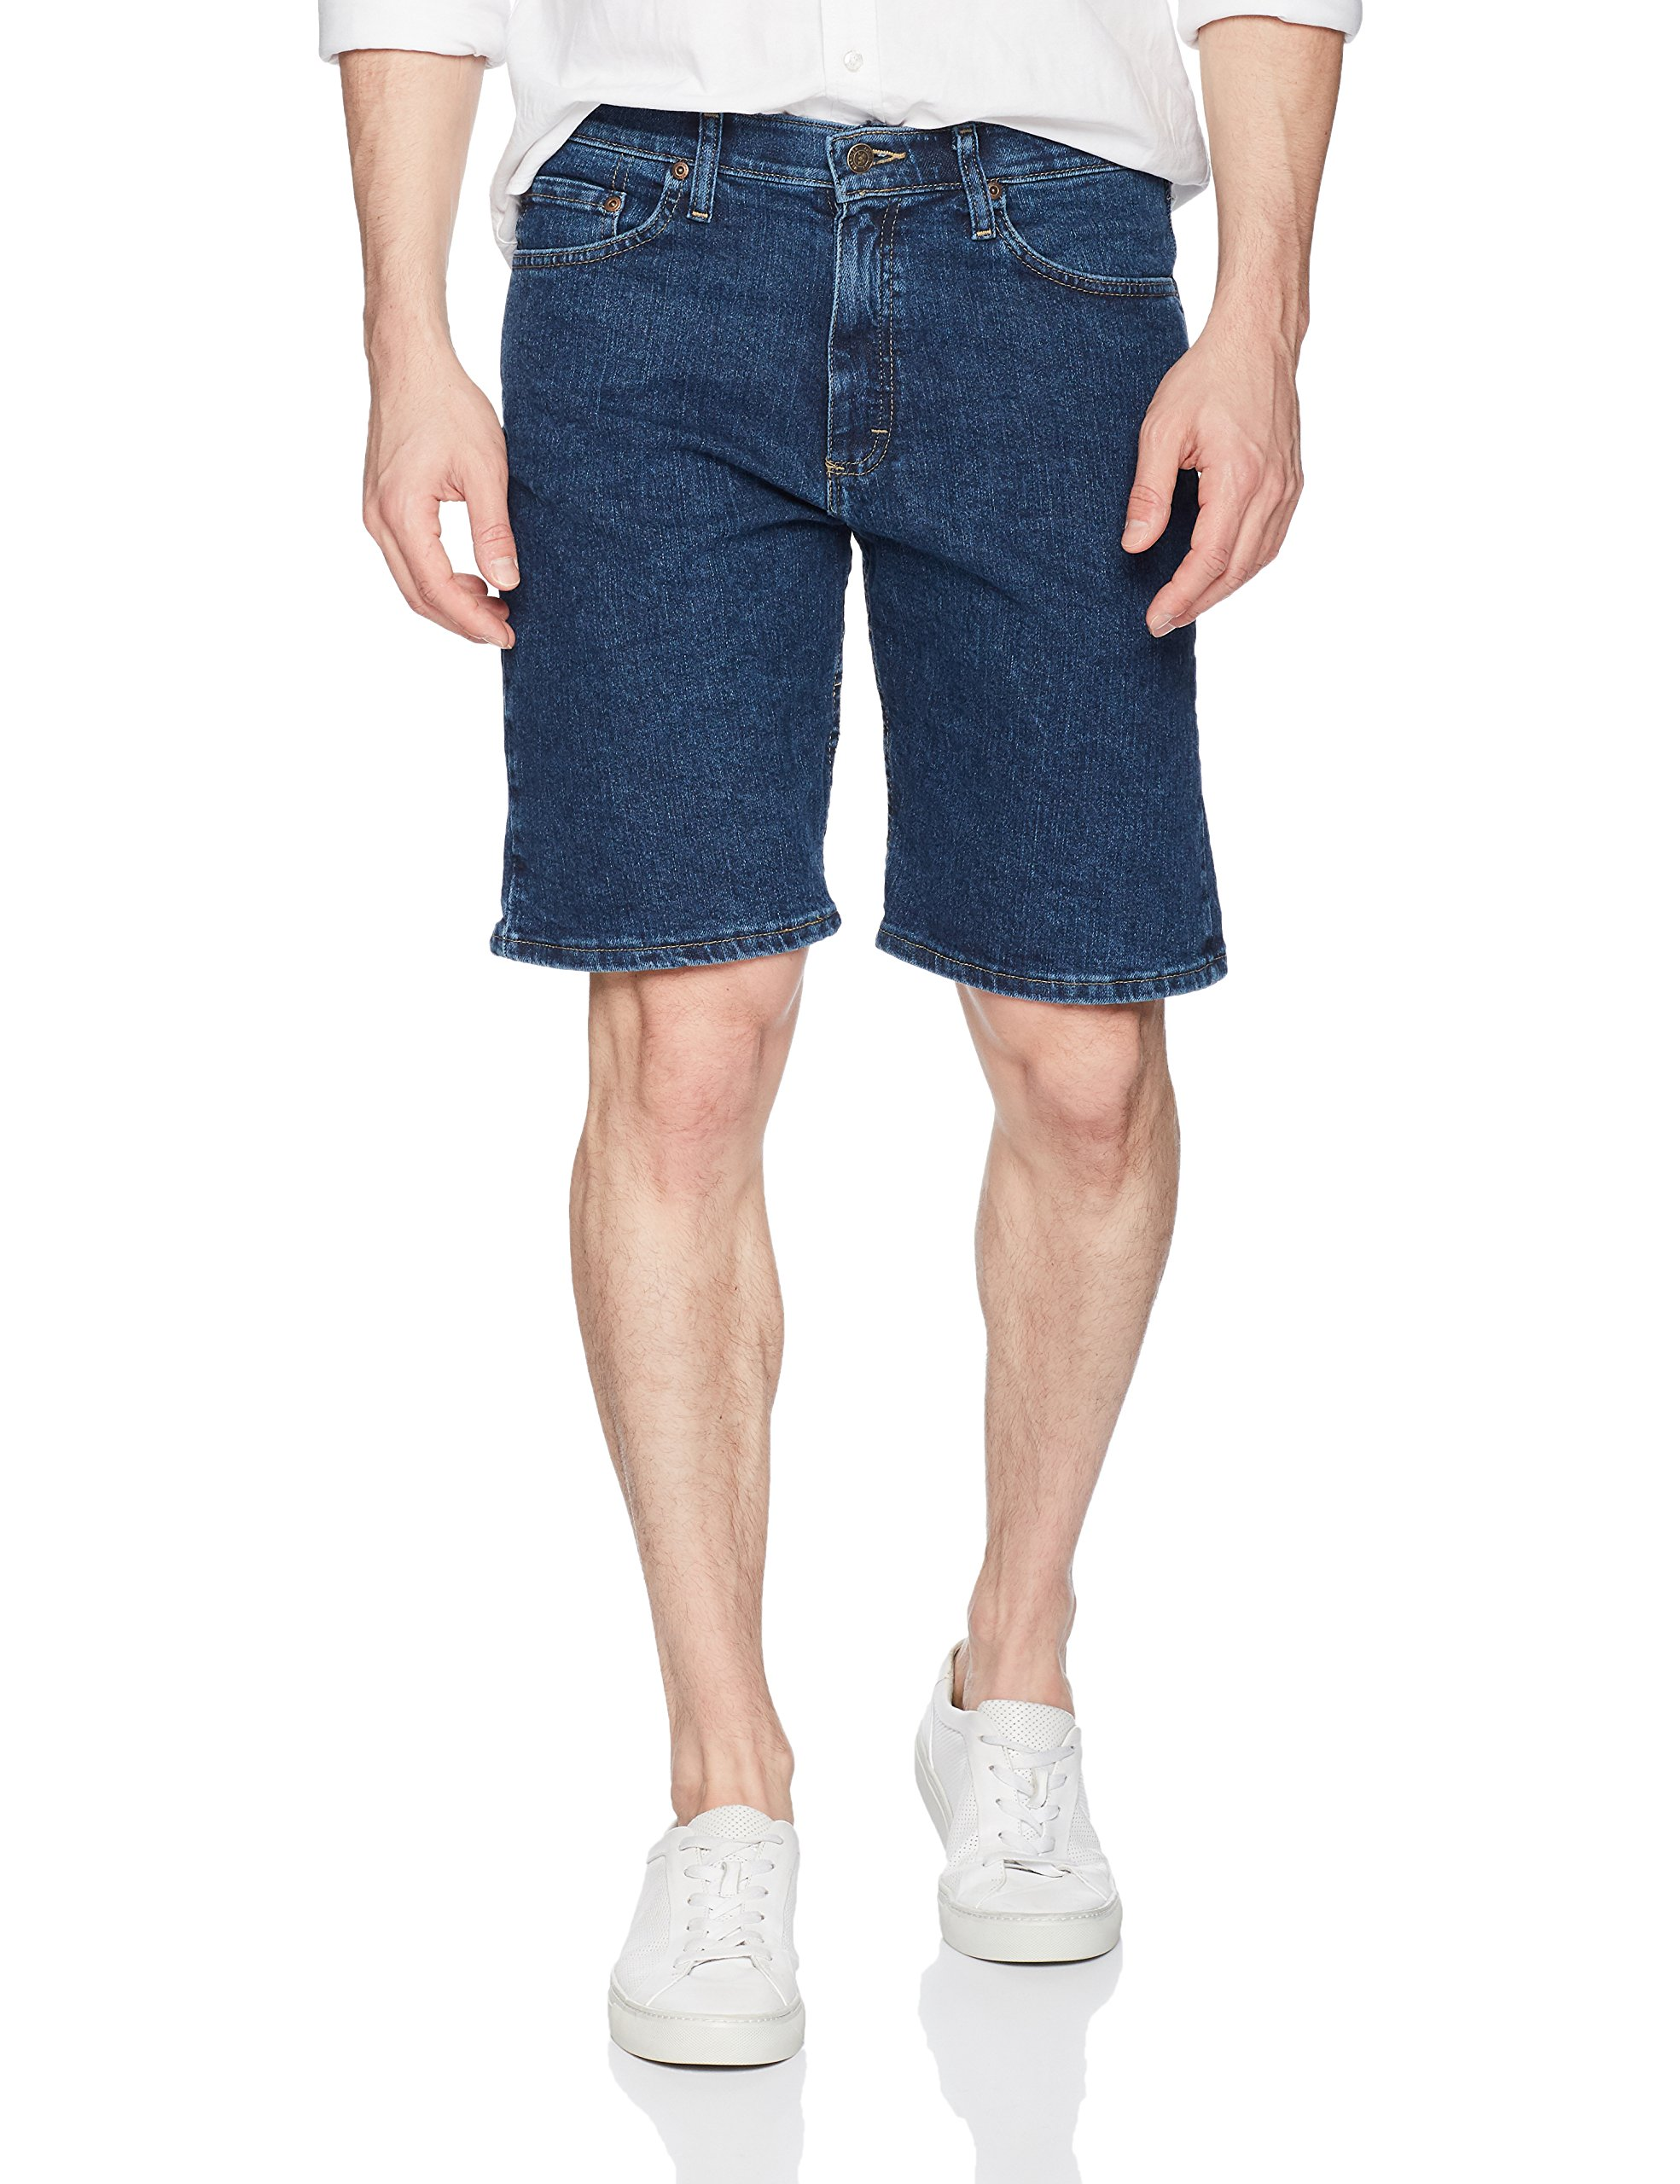 Wrangler Authentics Men's Comfort Flex Denim Short Dark Stonewash 36